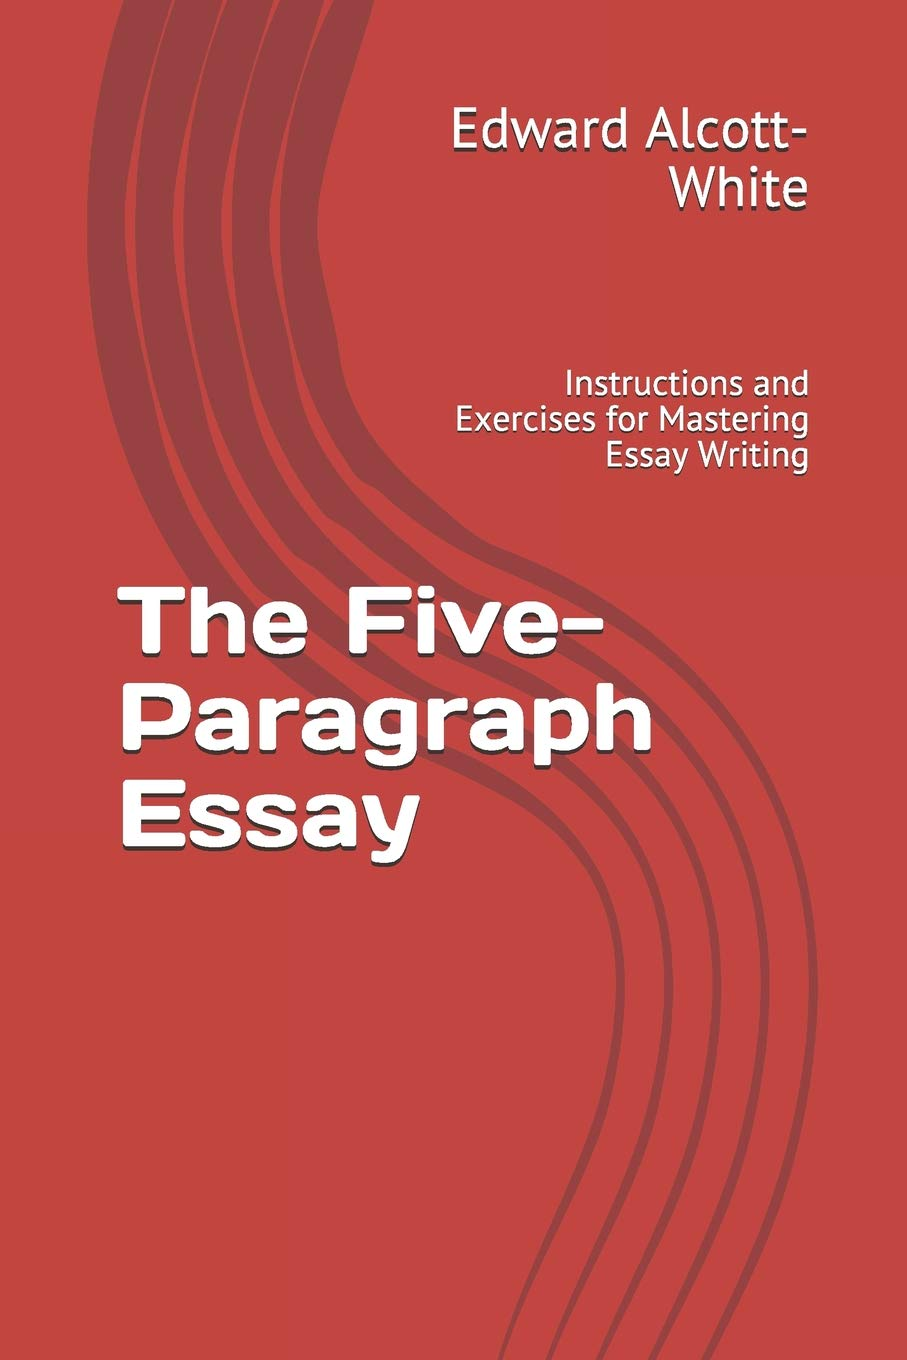 High School Reflective Essay The Fiveparagraph Essay Instructions And Exercises For Mastering Essay  Writing Edward Alcottwhite  Amazoncom Books Proposal Essay Topic Ideas also English Essay Short Story The Fiveparagraph Essay Instructions And Exercises For Mastering  Harvard Business School Essay